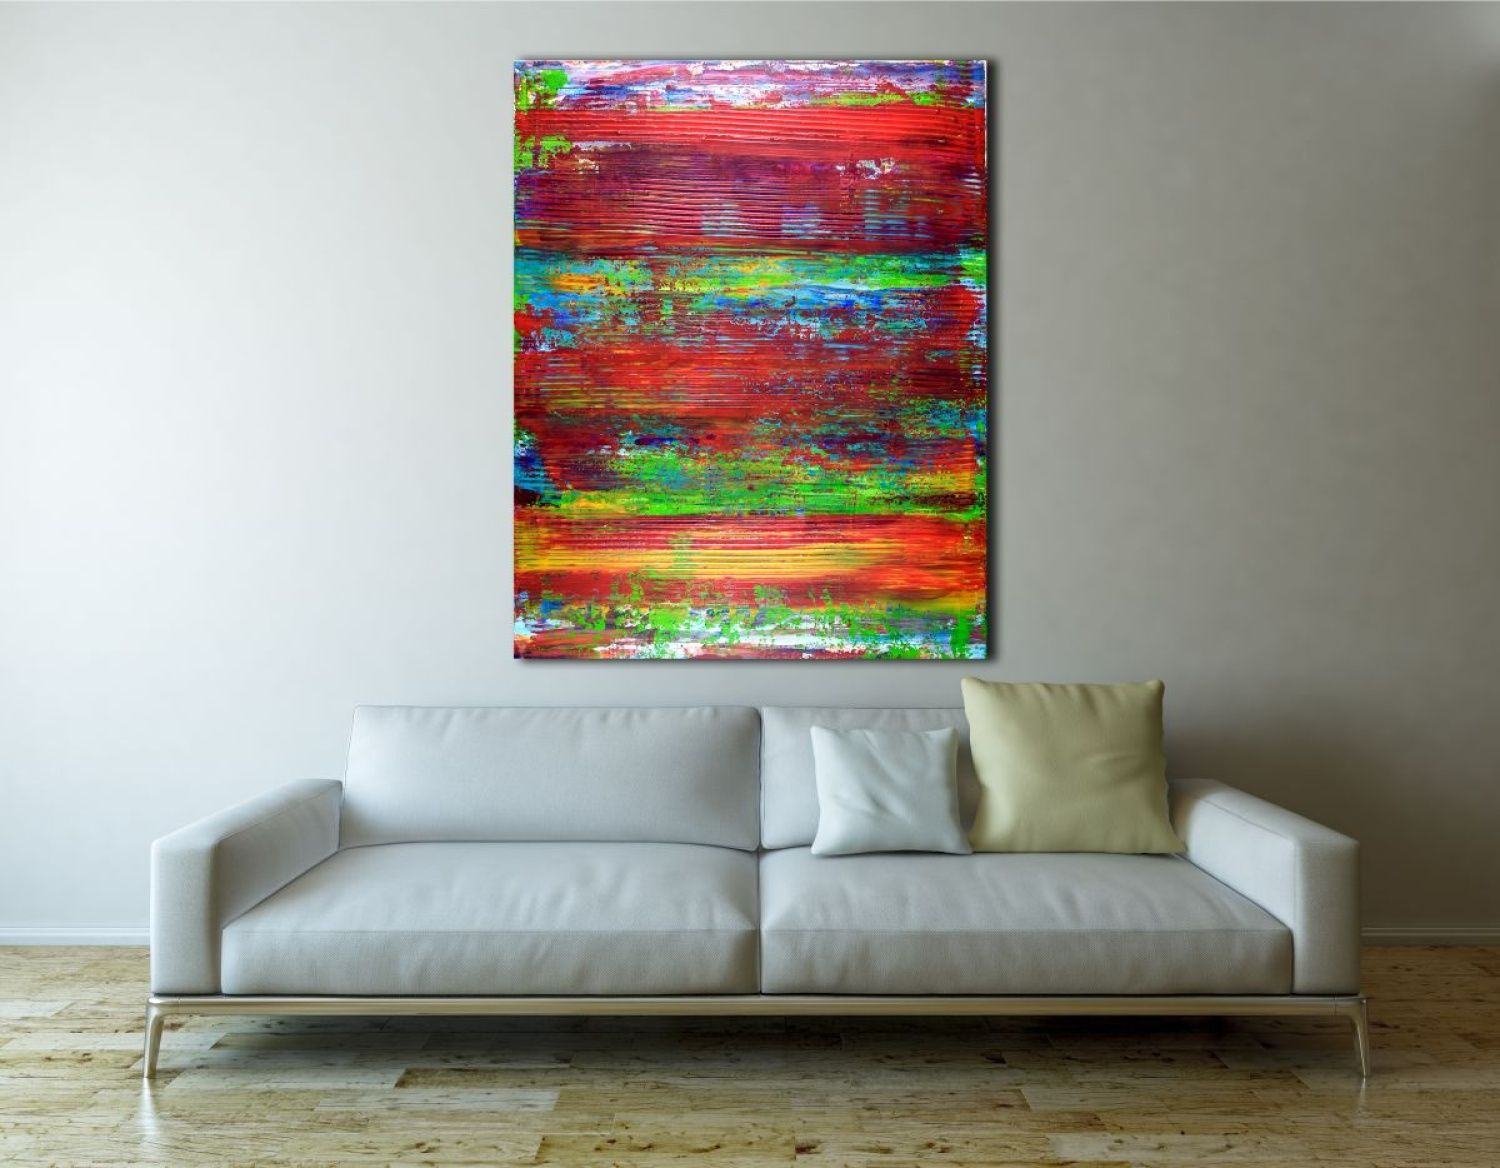 Vibrant piece with bold color blending, Iridescent paint drips and big palette knife strokes. This painting conveys motion, energy as well as lots of light and fast changes in contrast. Make me thi...